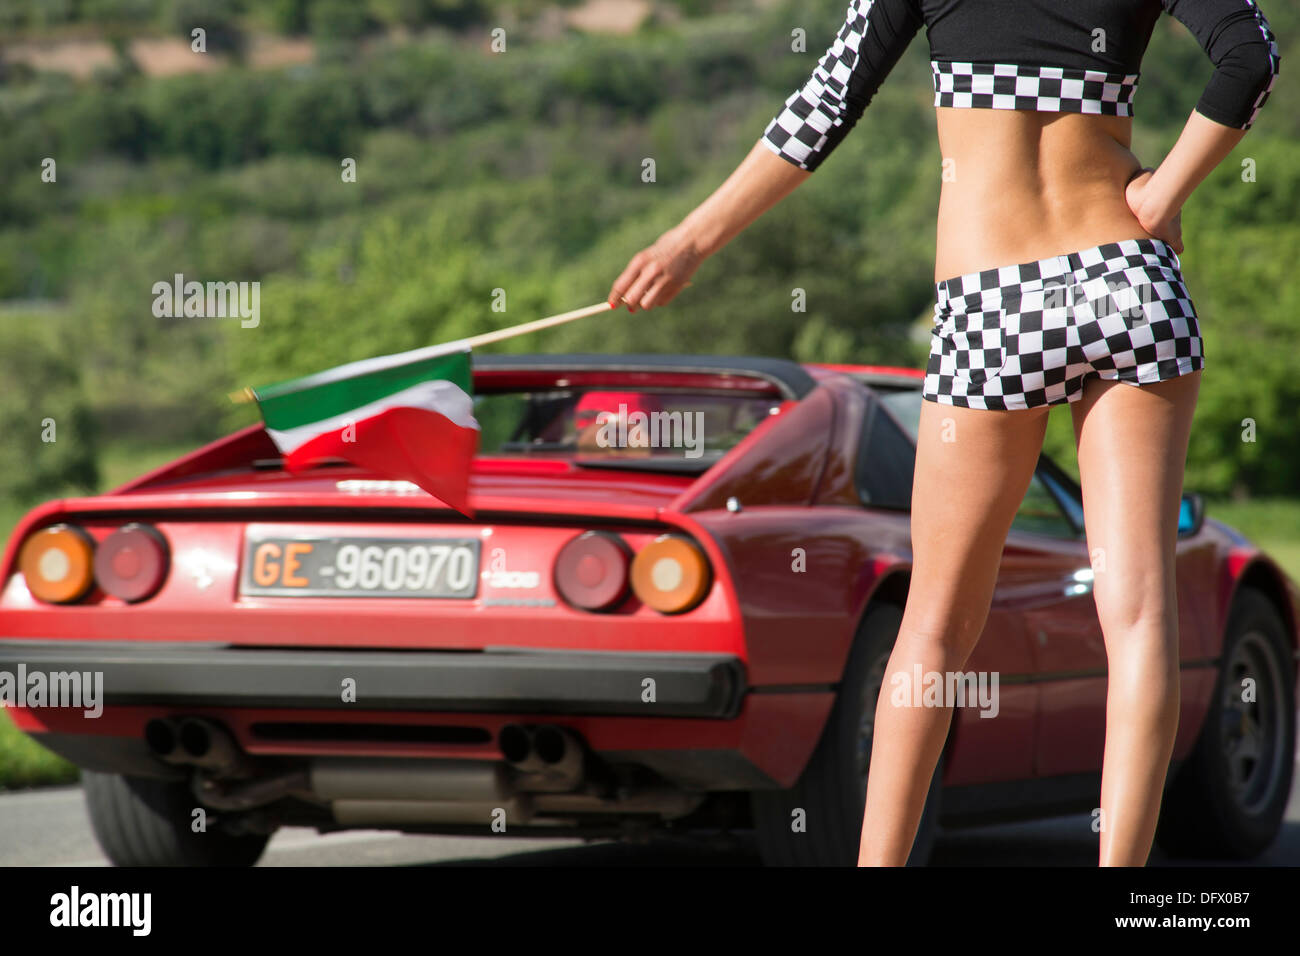 Italy car and girls